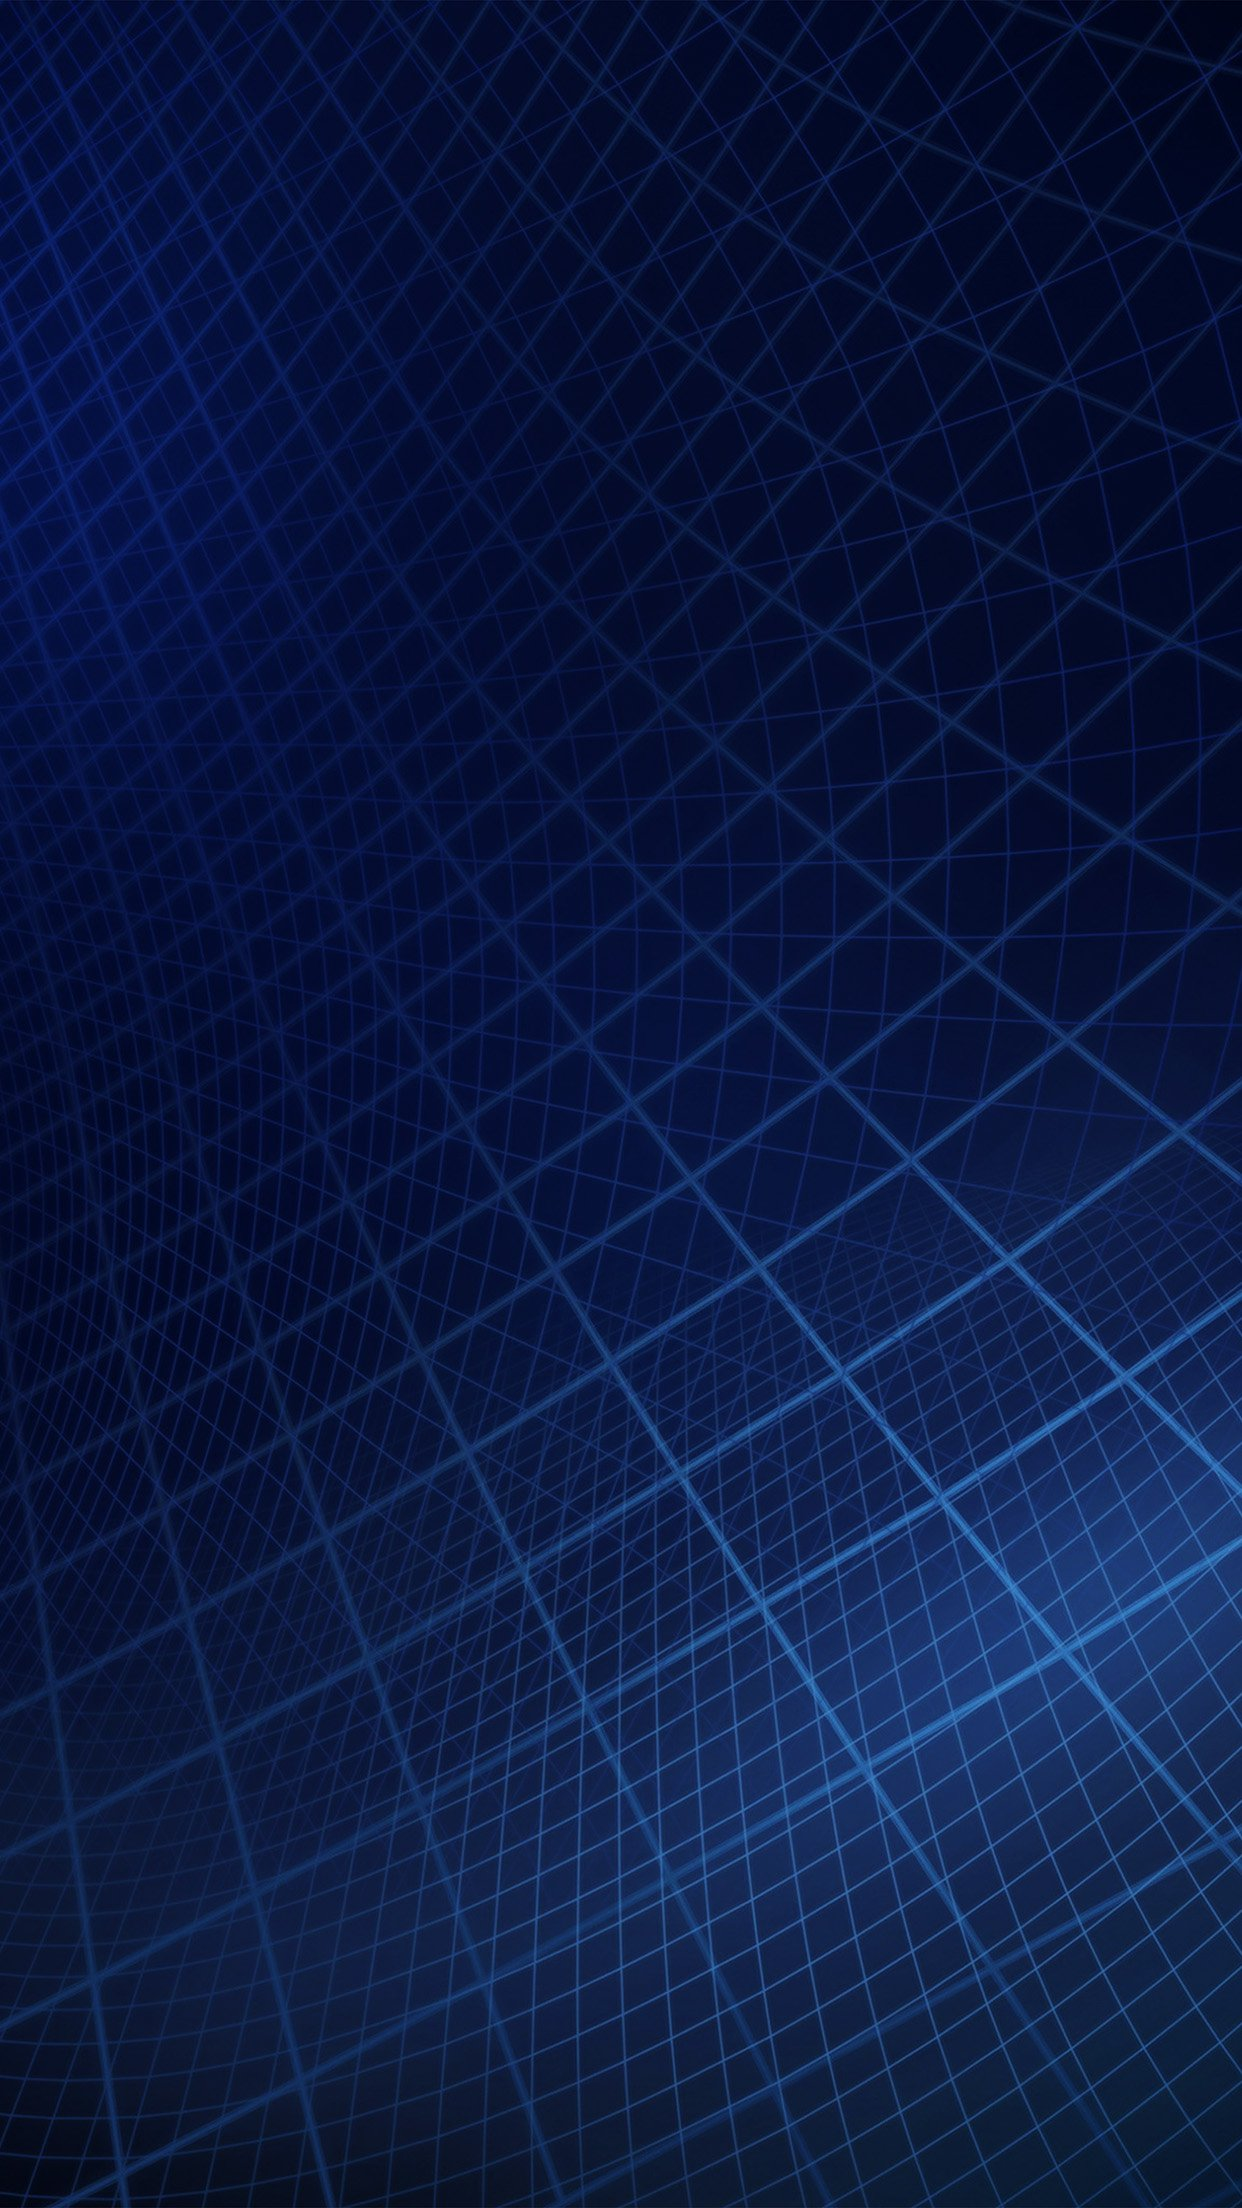 Abstract line digital dark blue pattern android wallpaper abstract line digital dark blue pattern android wallpaper android hd wallpapers voltagebd Choice Image